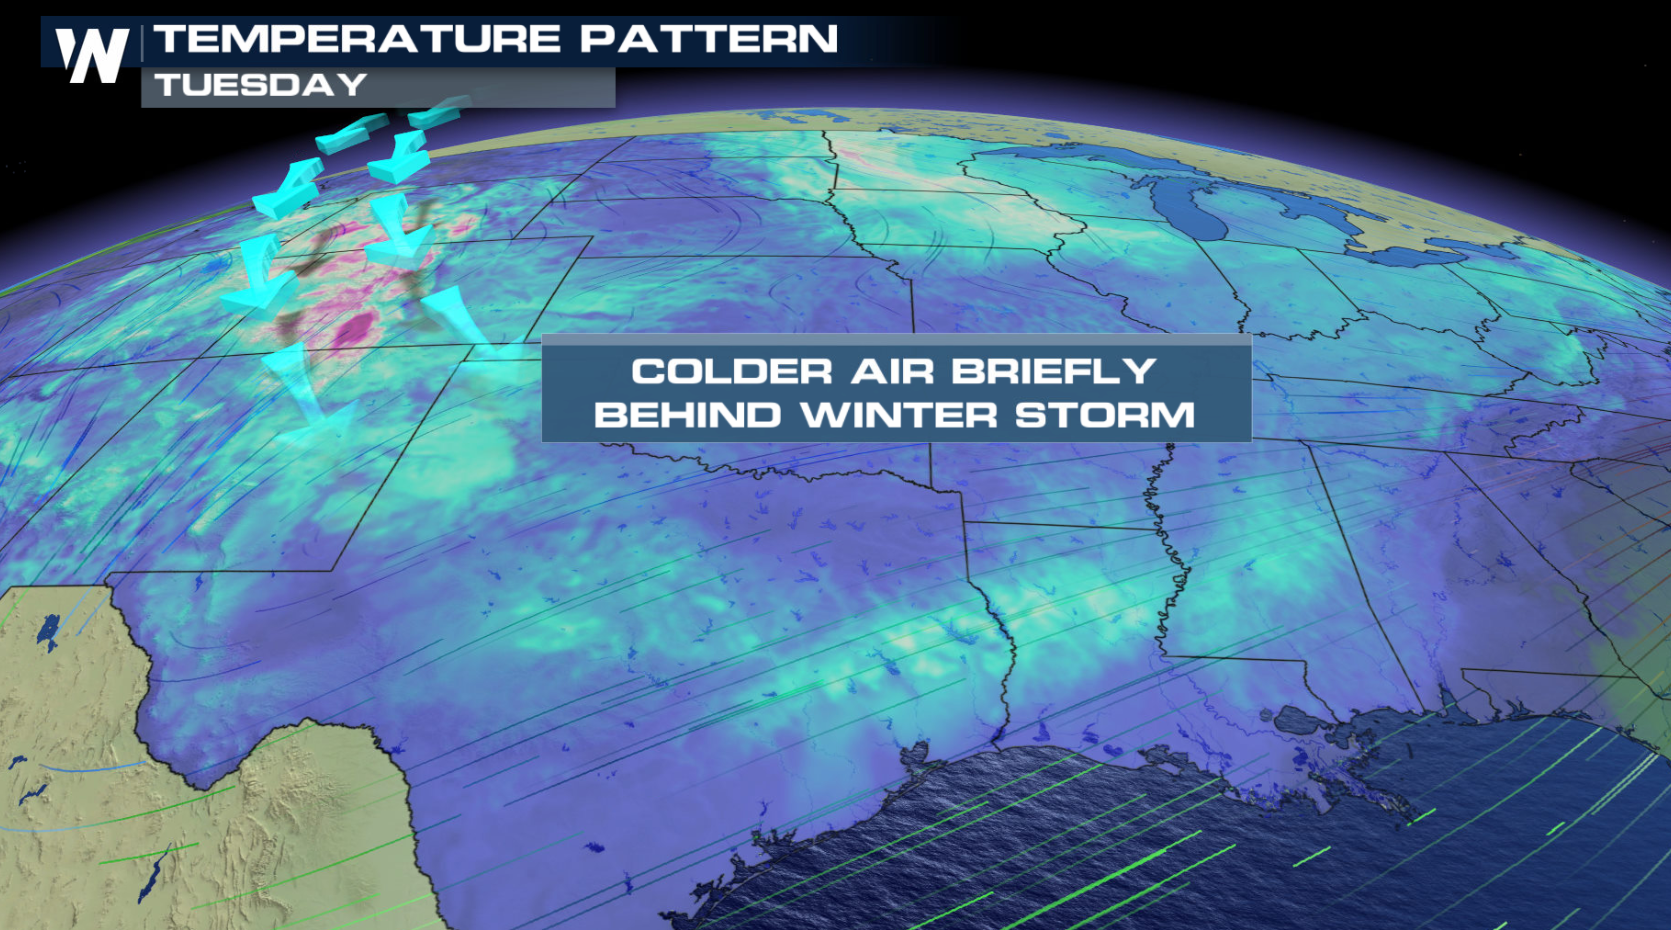 Cold Temperatures Ahead for the South